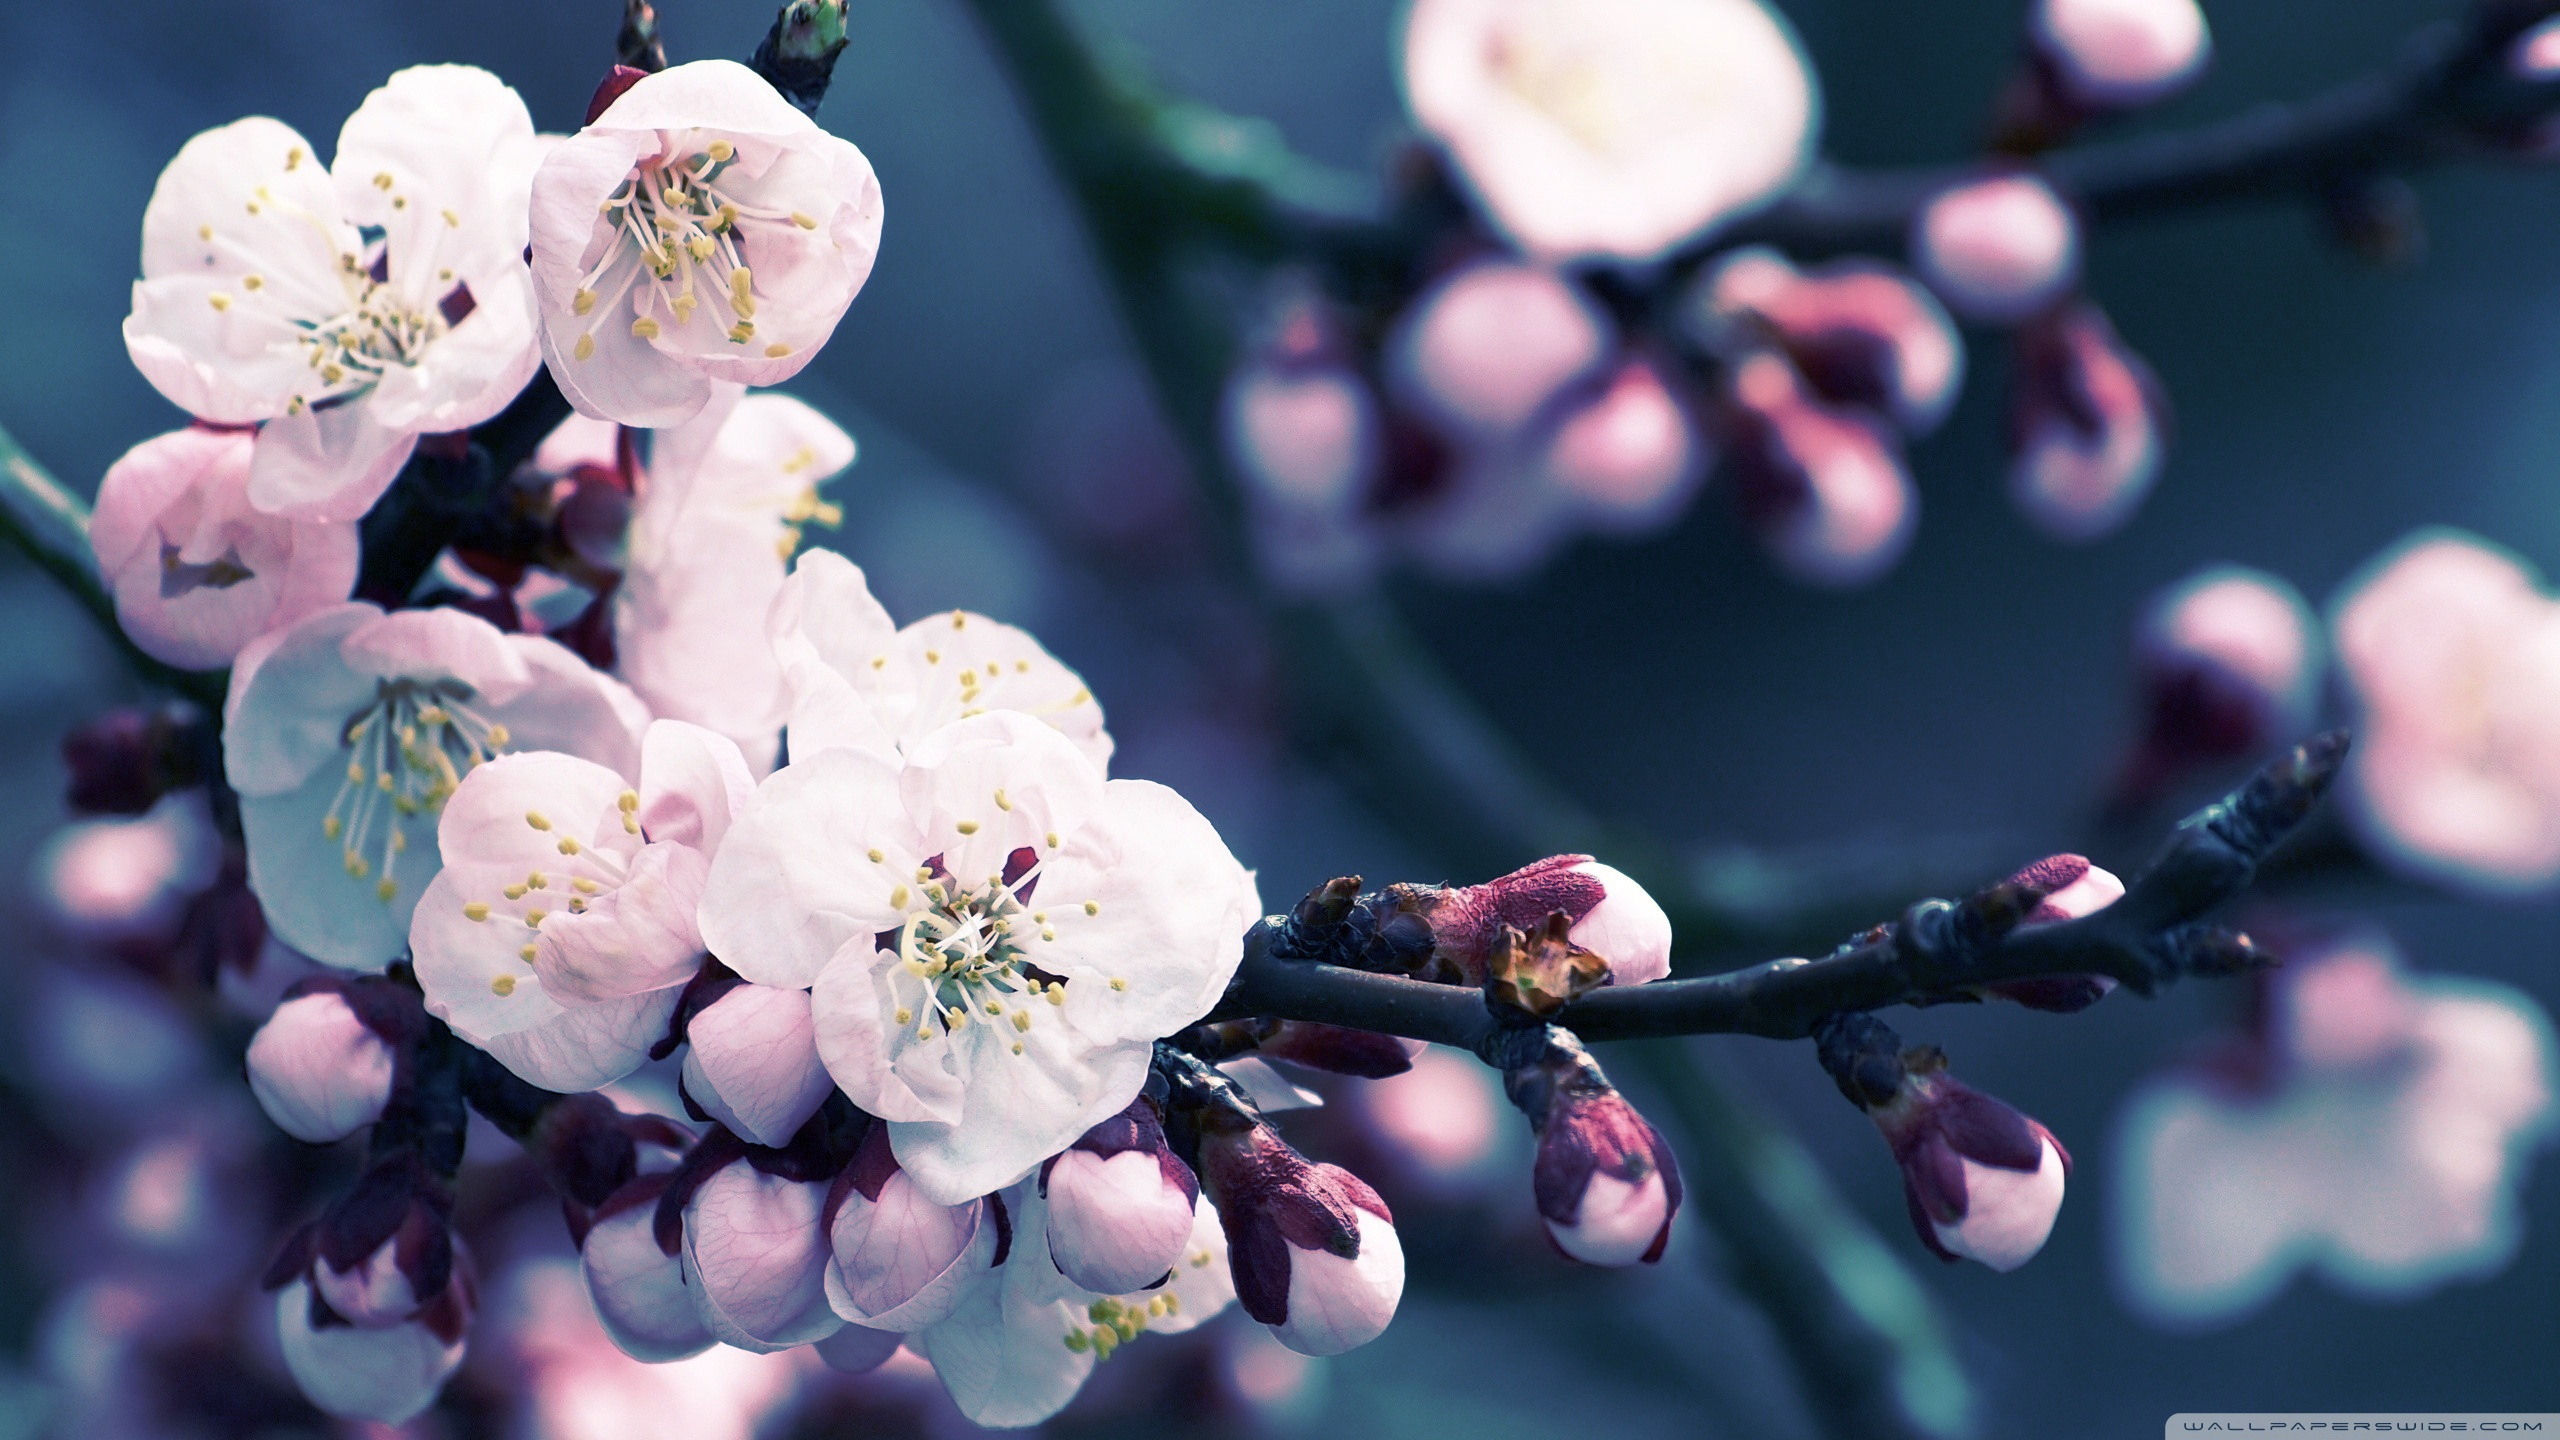 Apricot Flower Wallpaper